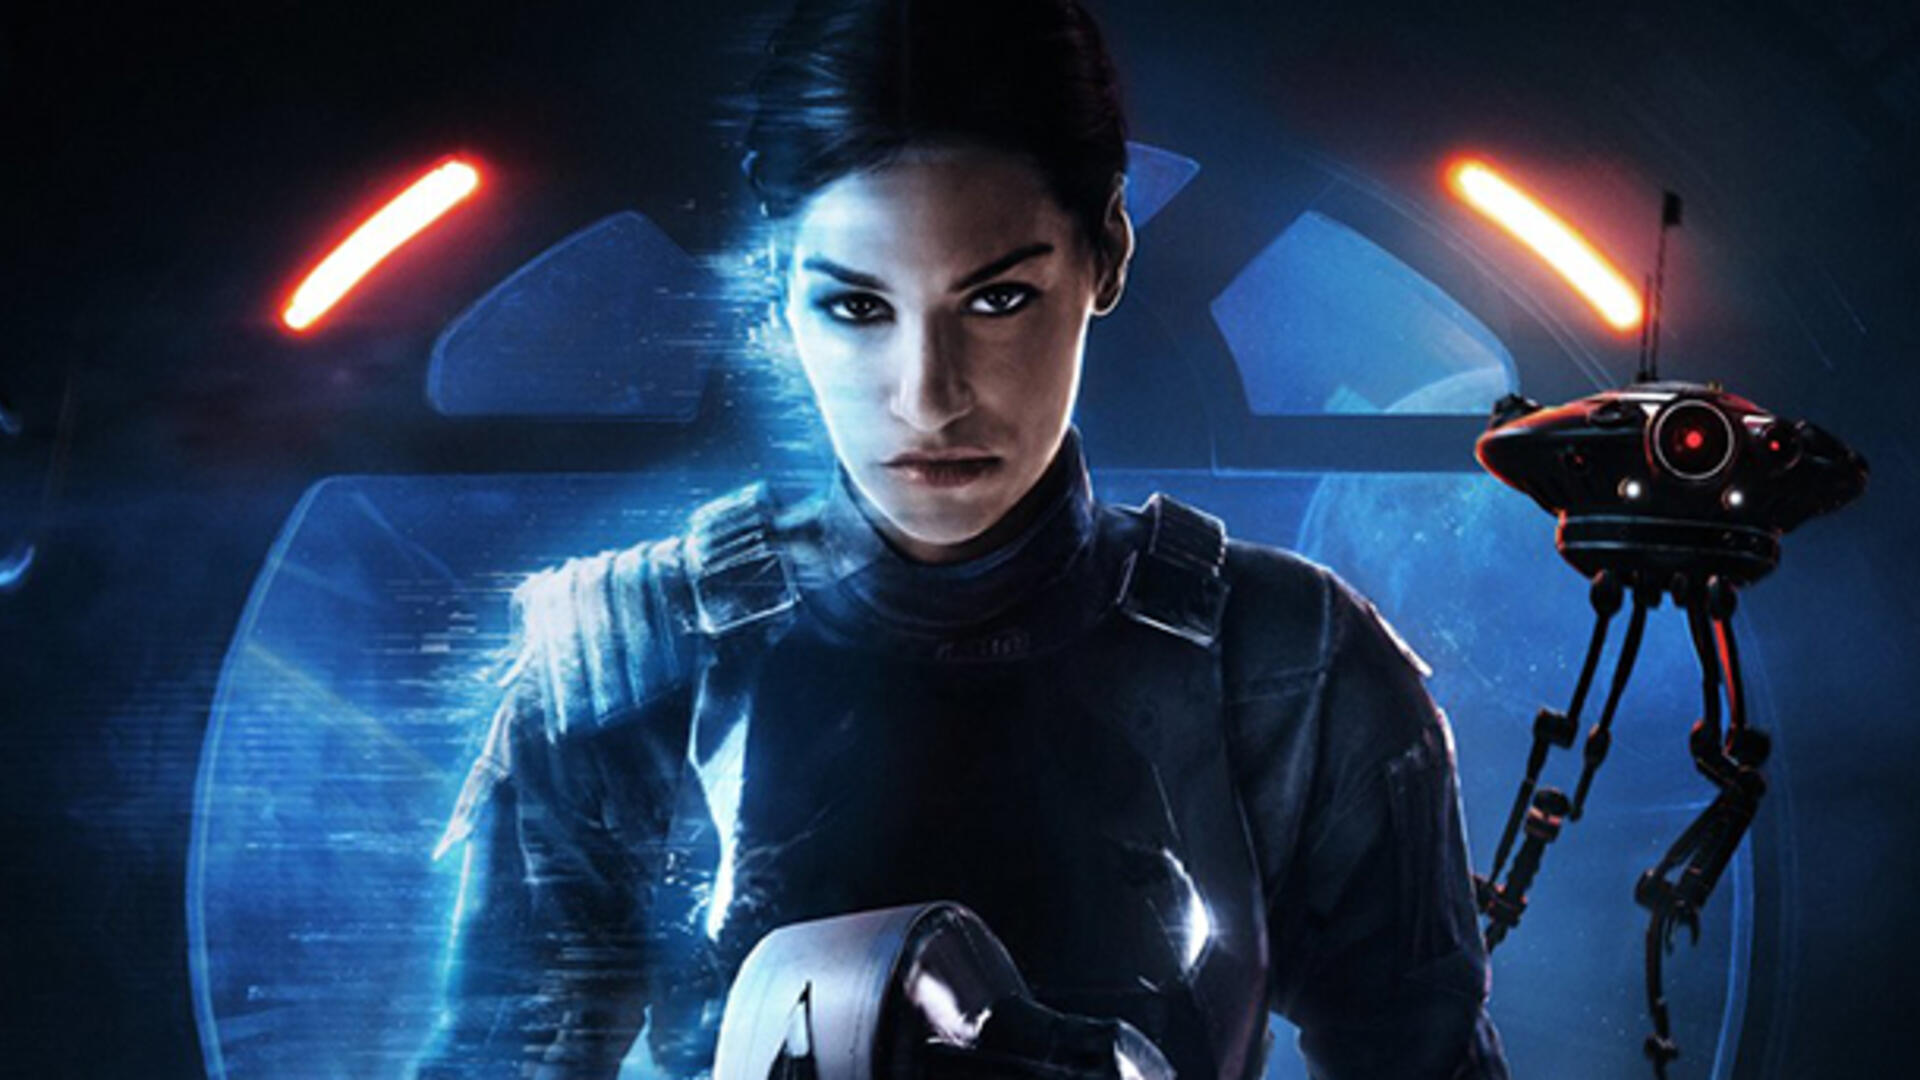 Star Wars Battlefront 2 Review: EA Goes to the Dark Side